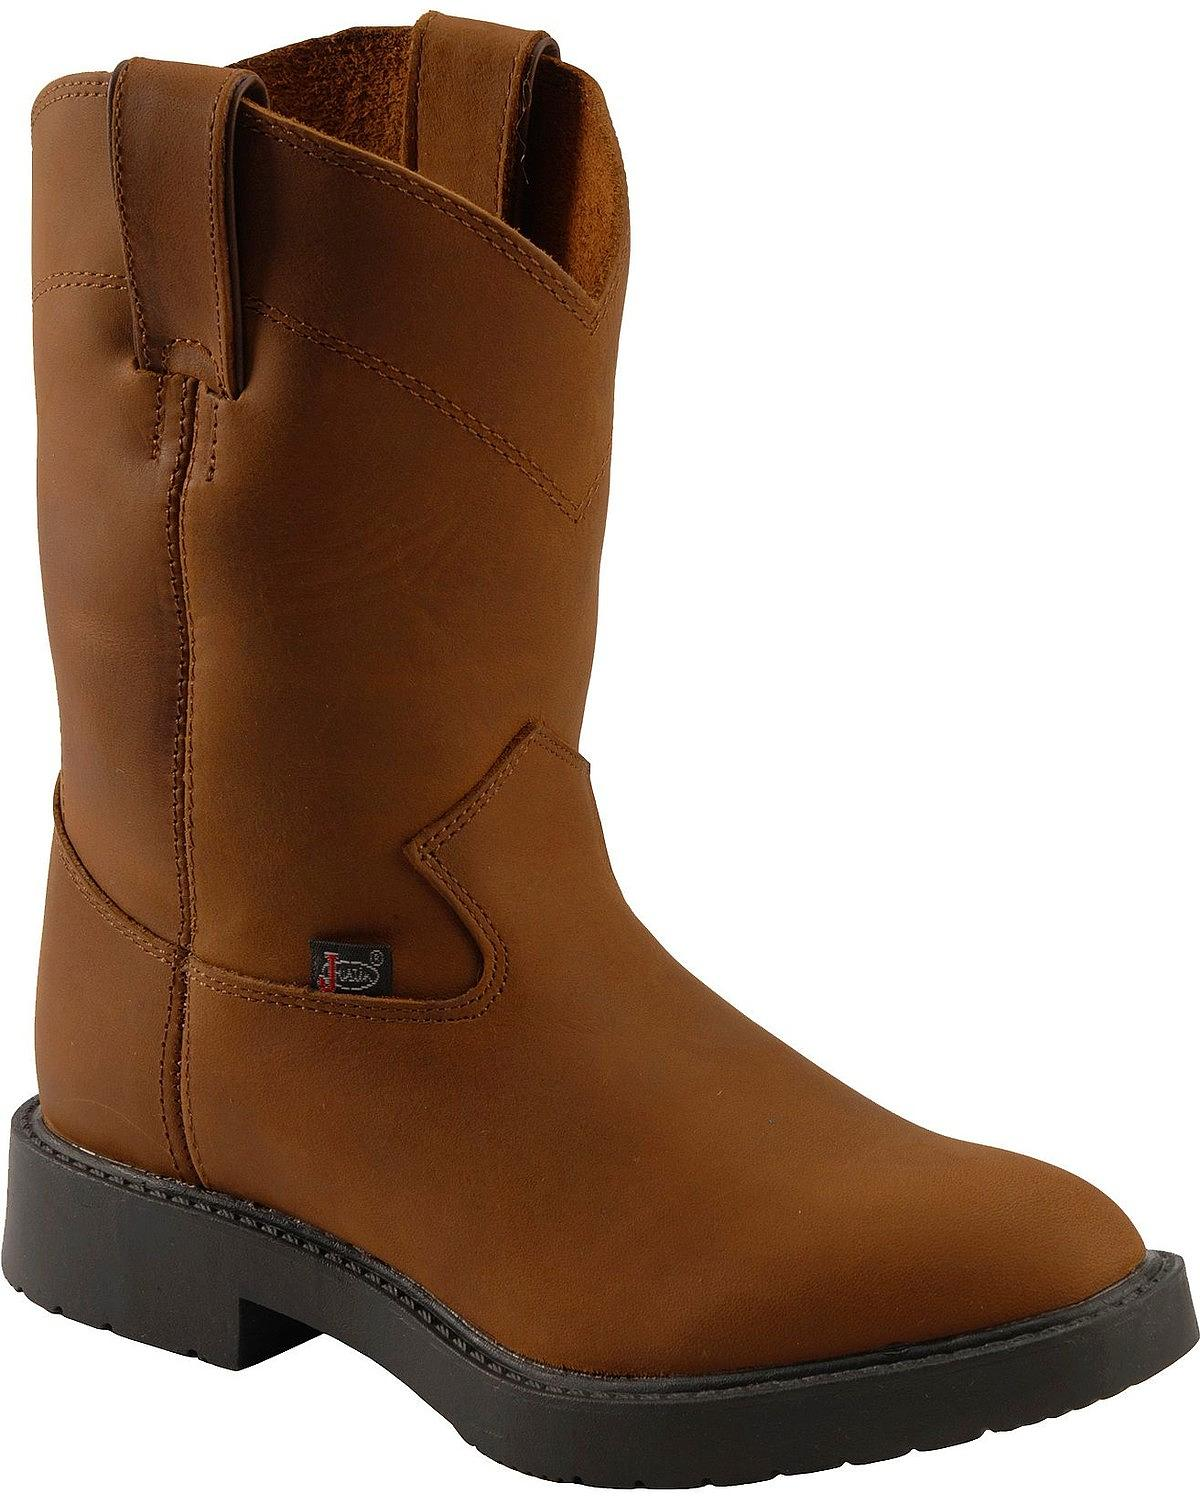 Justin Boots Aged Bark ( Youth   Toddler ) by Justin Boots